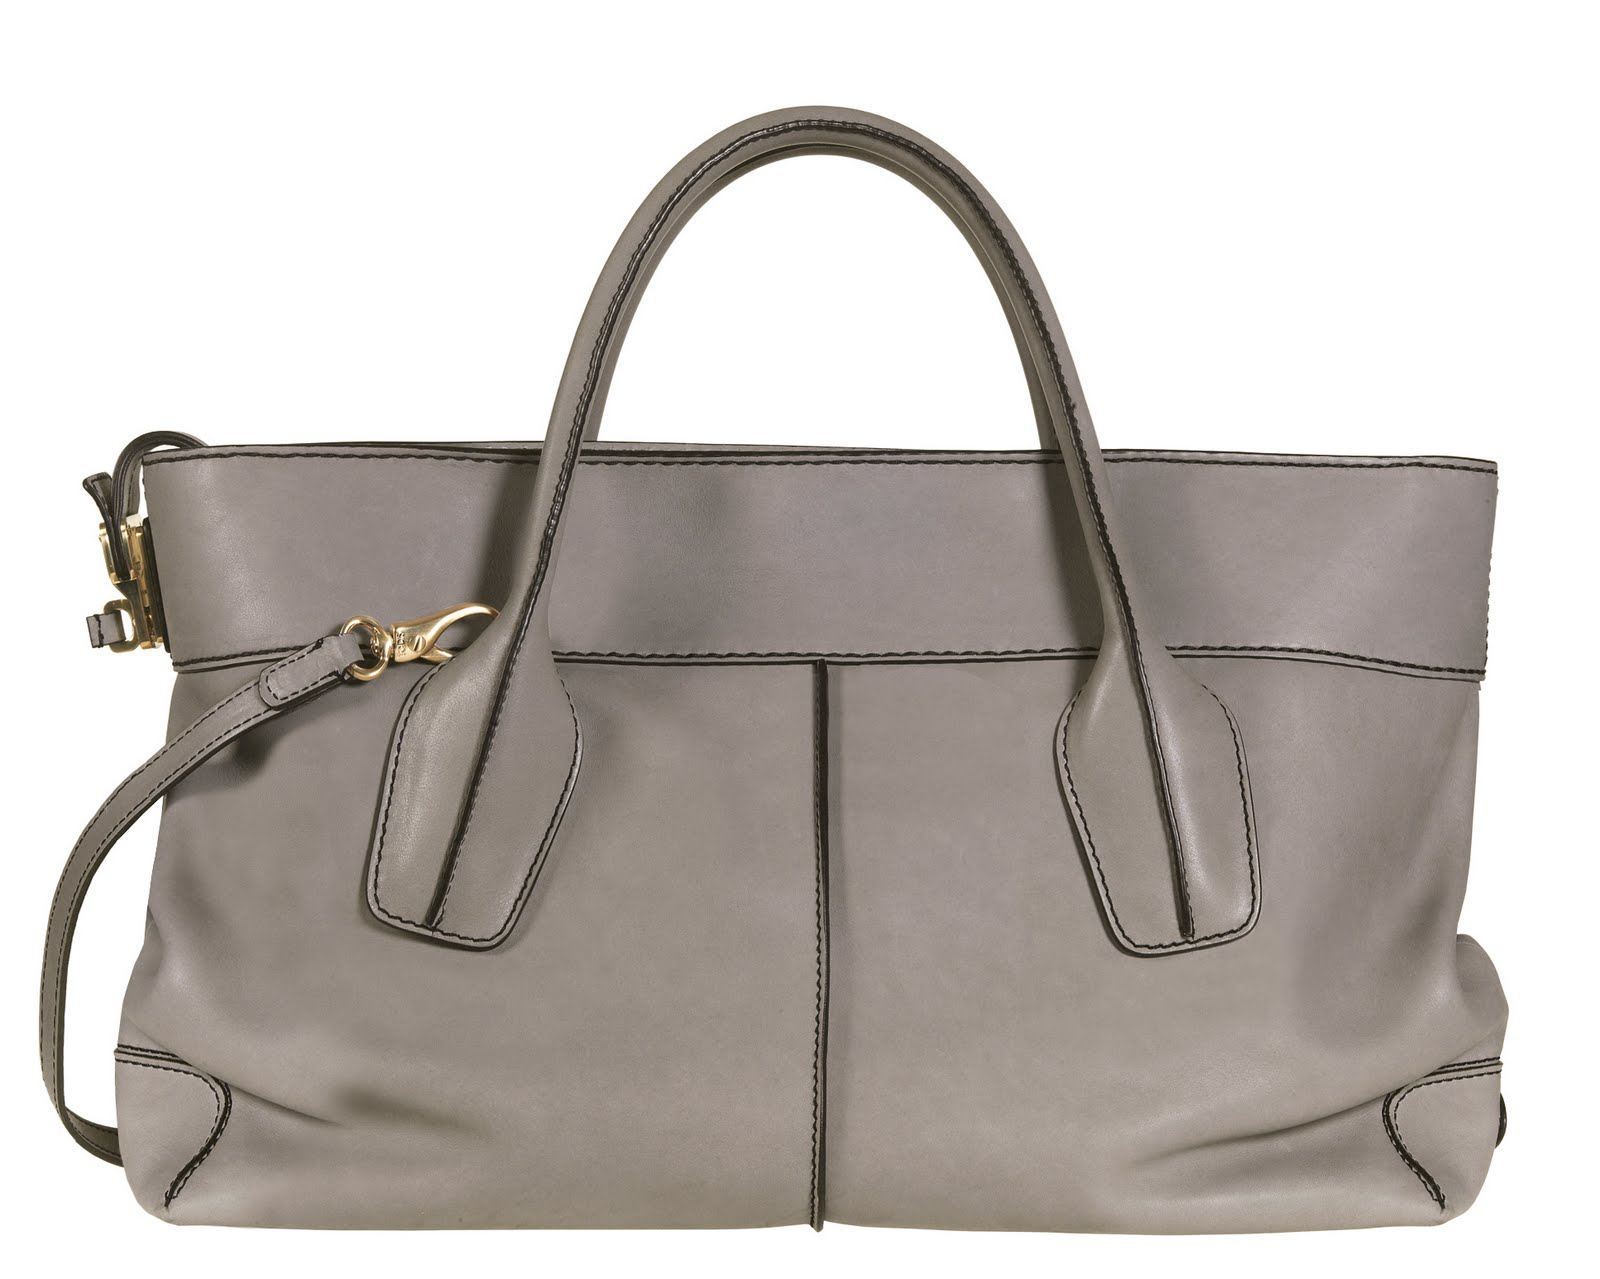 b5dedc86628d3 My Wardrobe Wishlist: The TOD's Luxury D Bag - Part 2